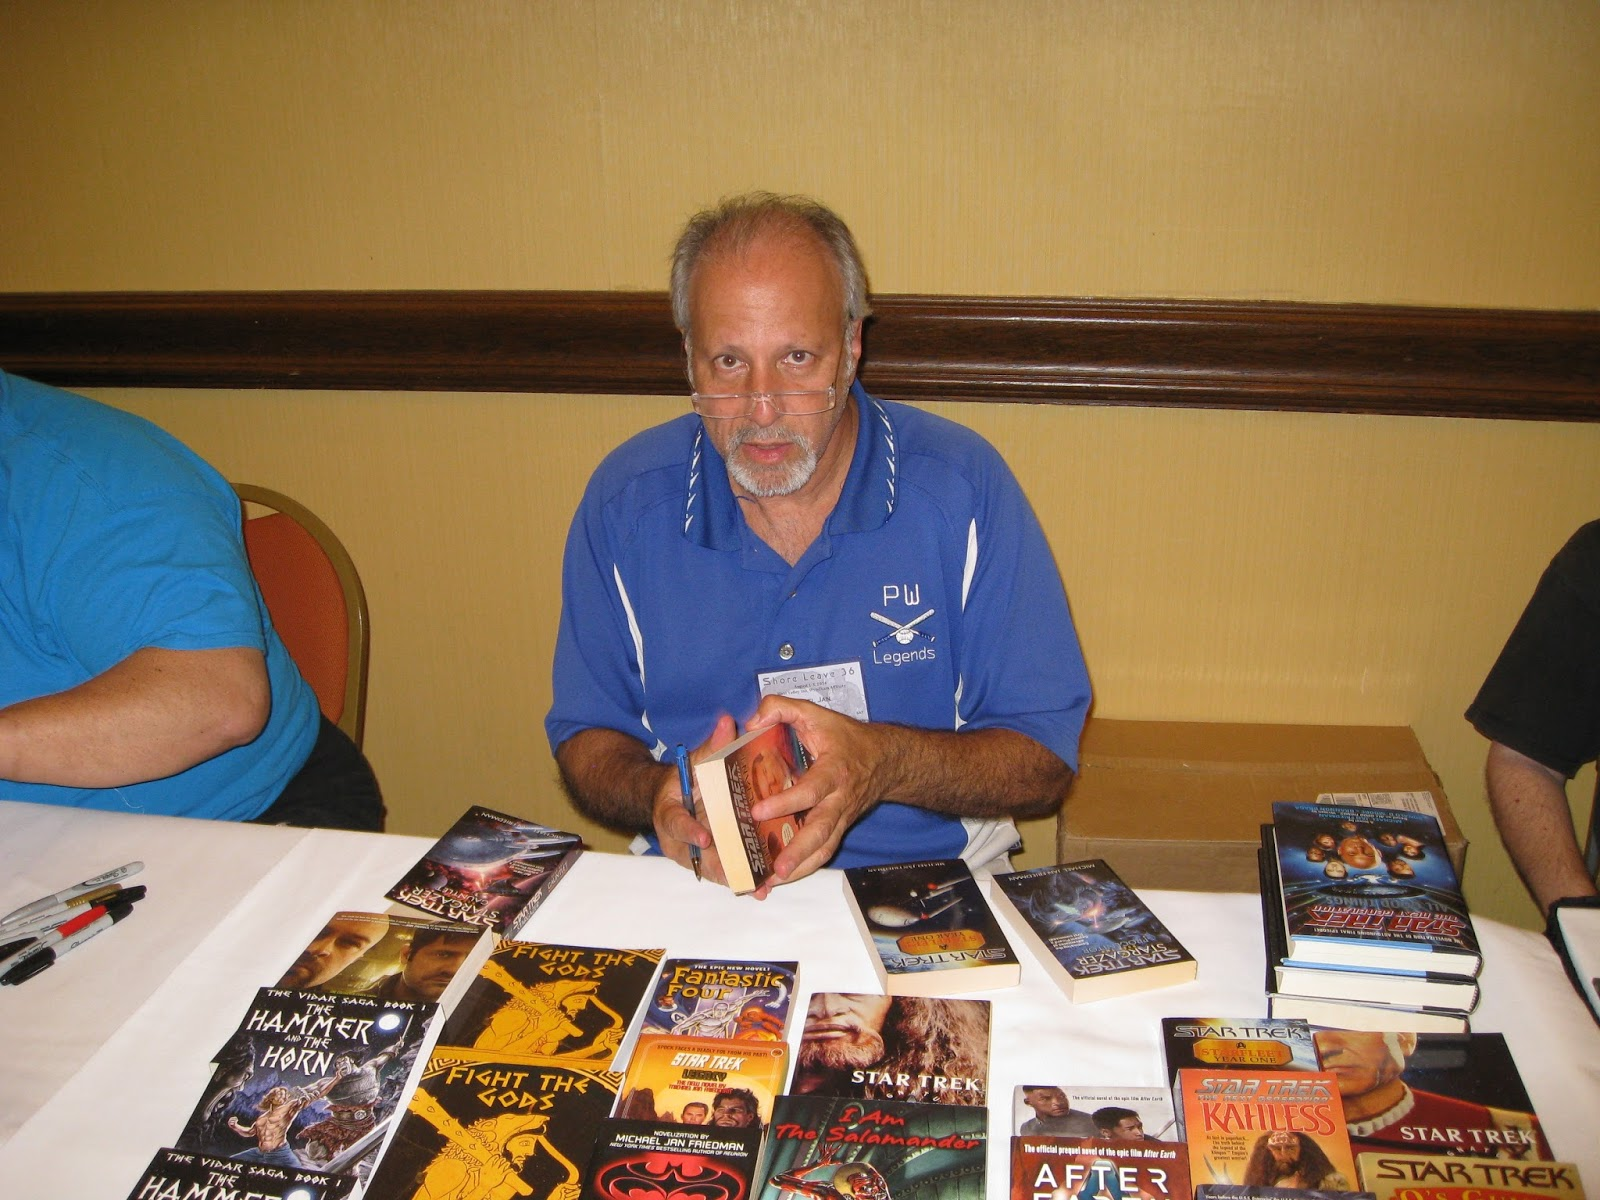 Michael Jan Friedman, Author